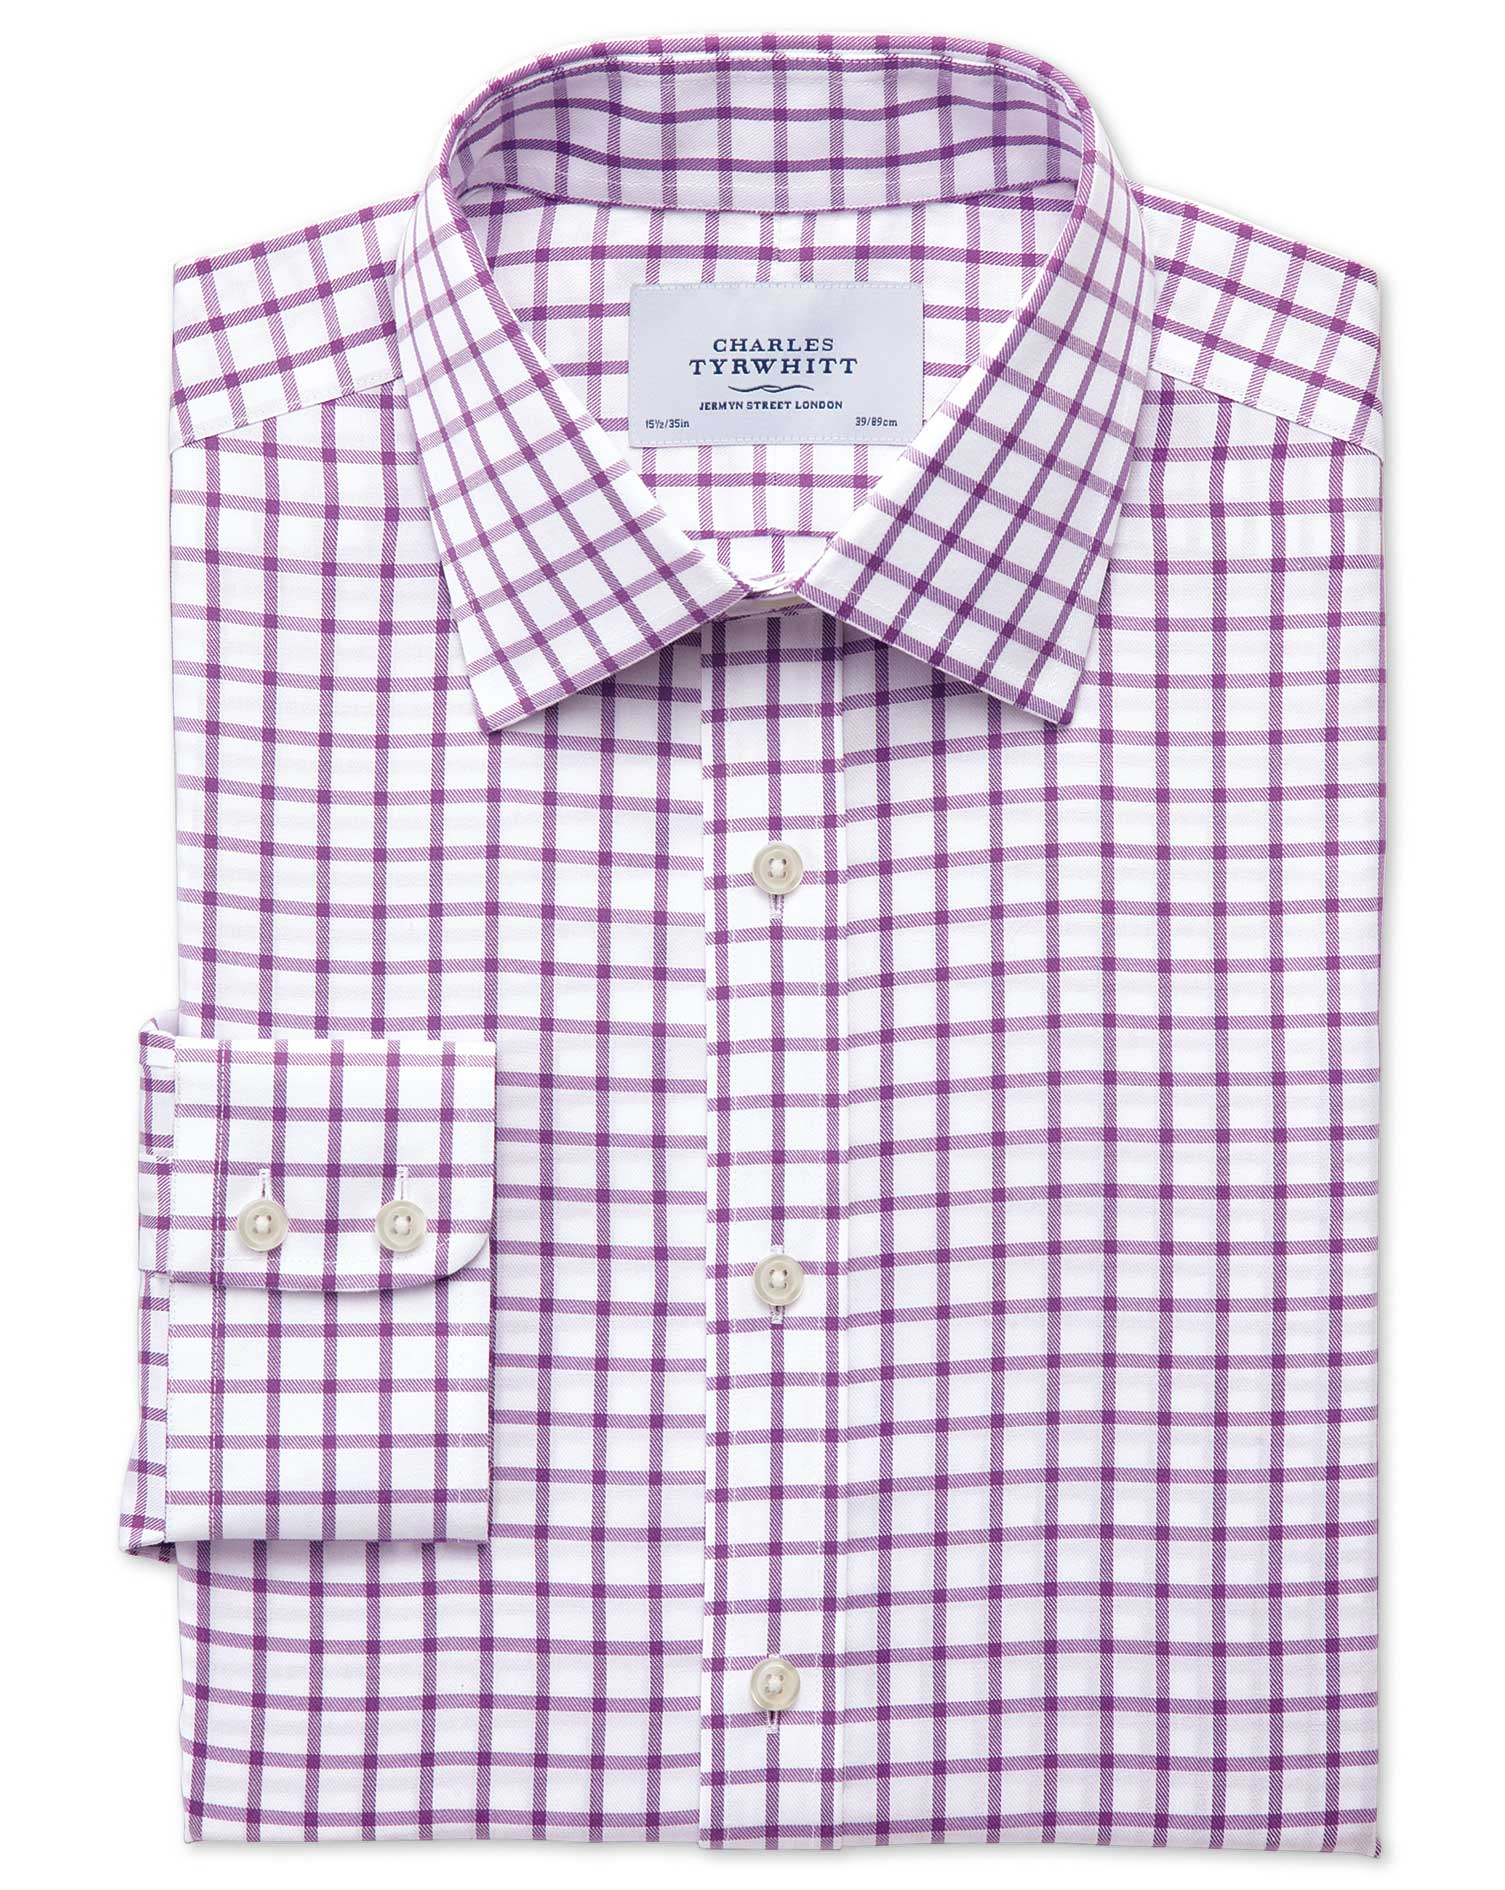 Classic Fit Non-Iron Twill Grid Check Purple Cotton Formal Shirt Single Cuff Size 16.5/36 by Charles